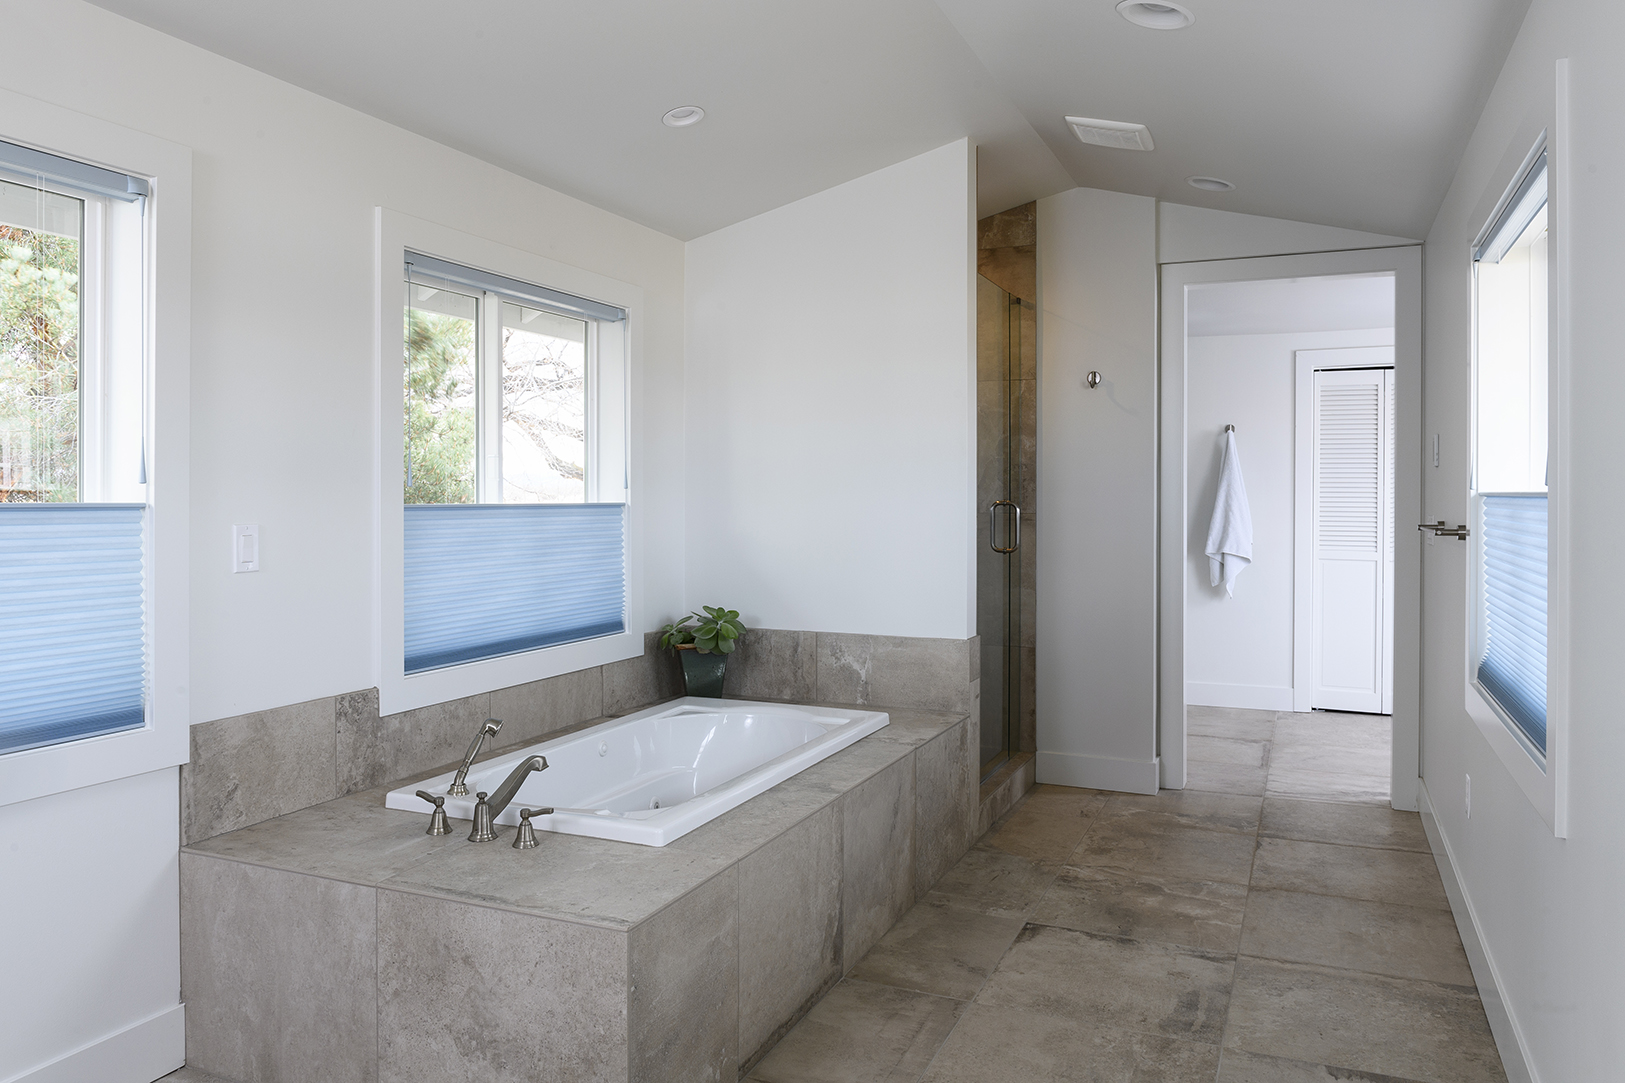 pgc-building-design-bend-oregon-meyer-remodel-PGC-8037-1625px